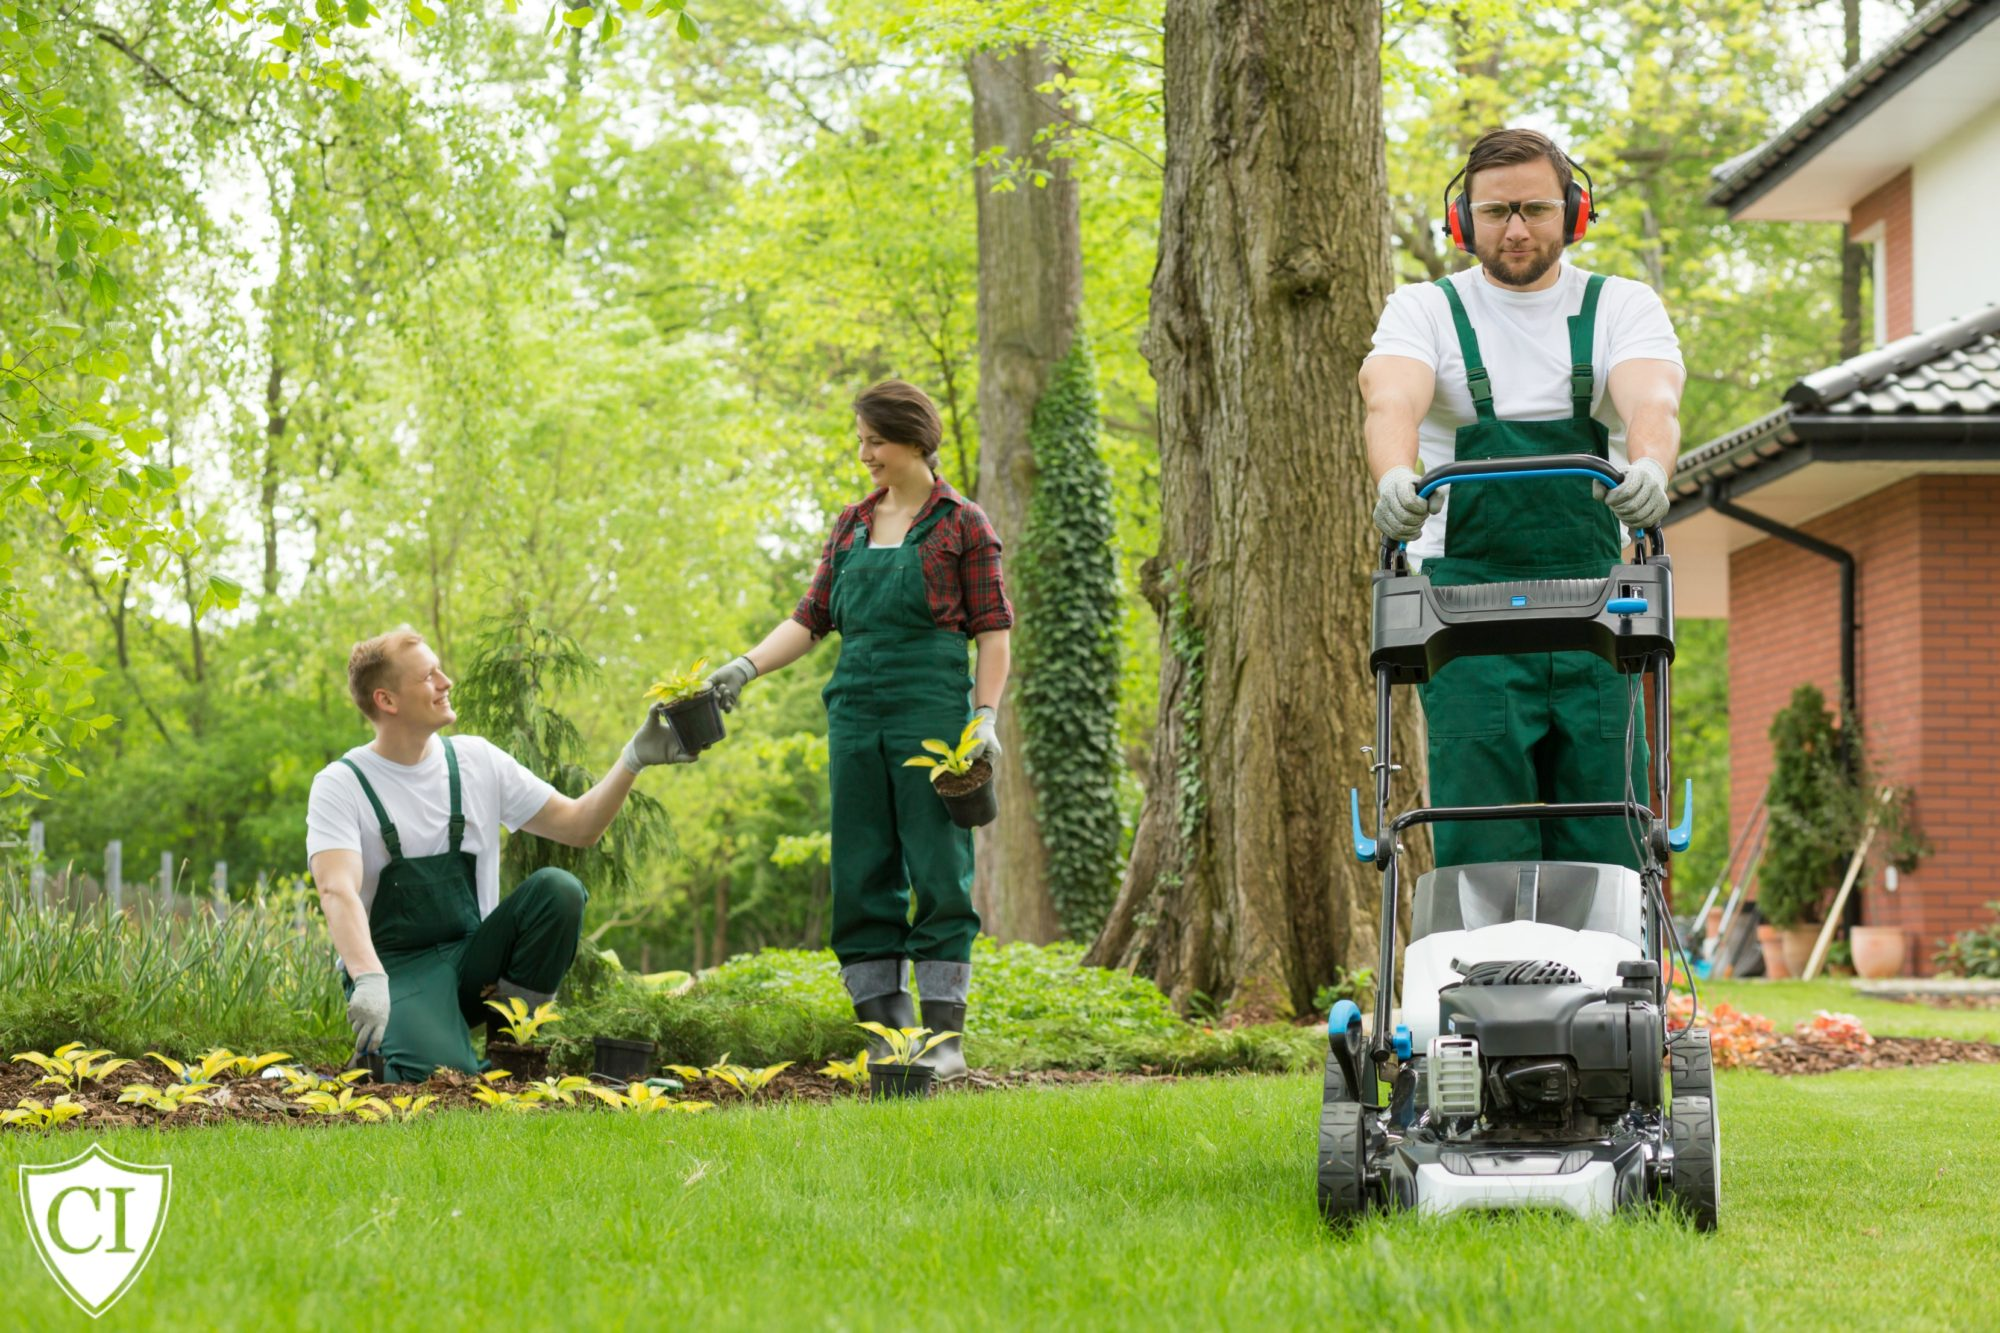 landscapers working on lawn and garden